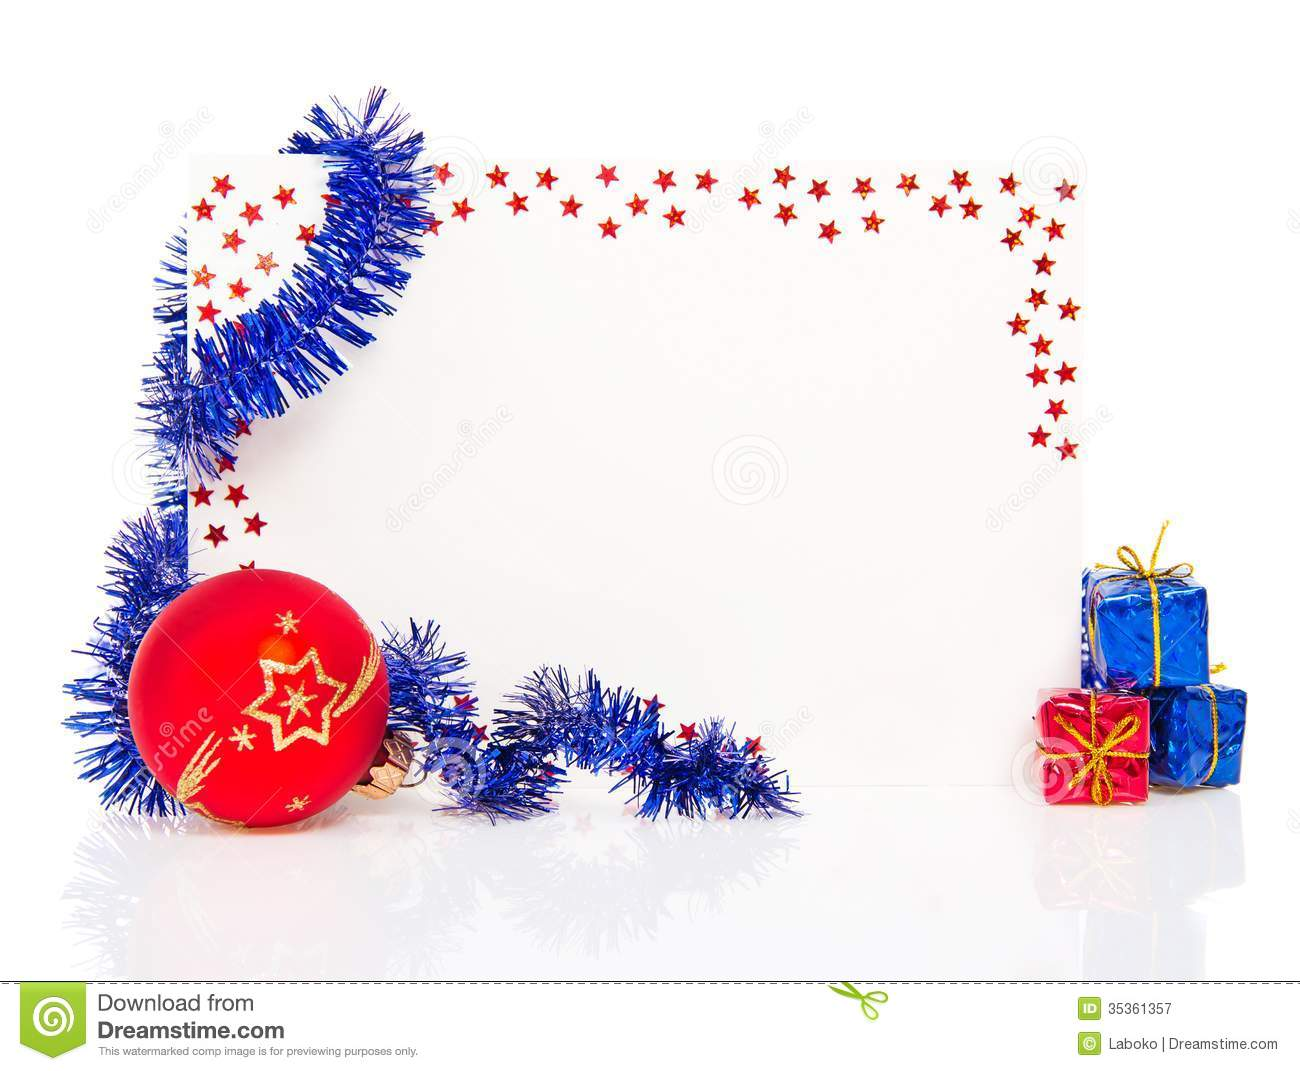 Happy New Year Greeting Card With Blue Tinsel Royalty Free ...